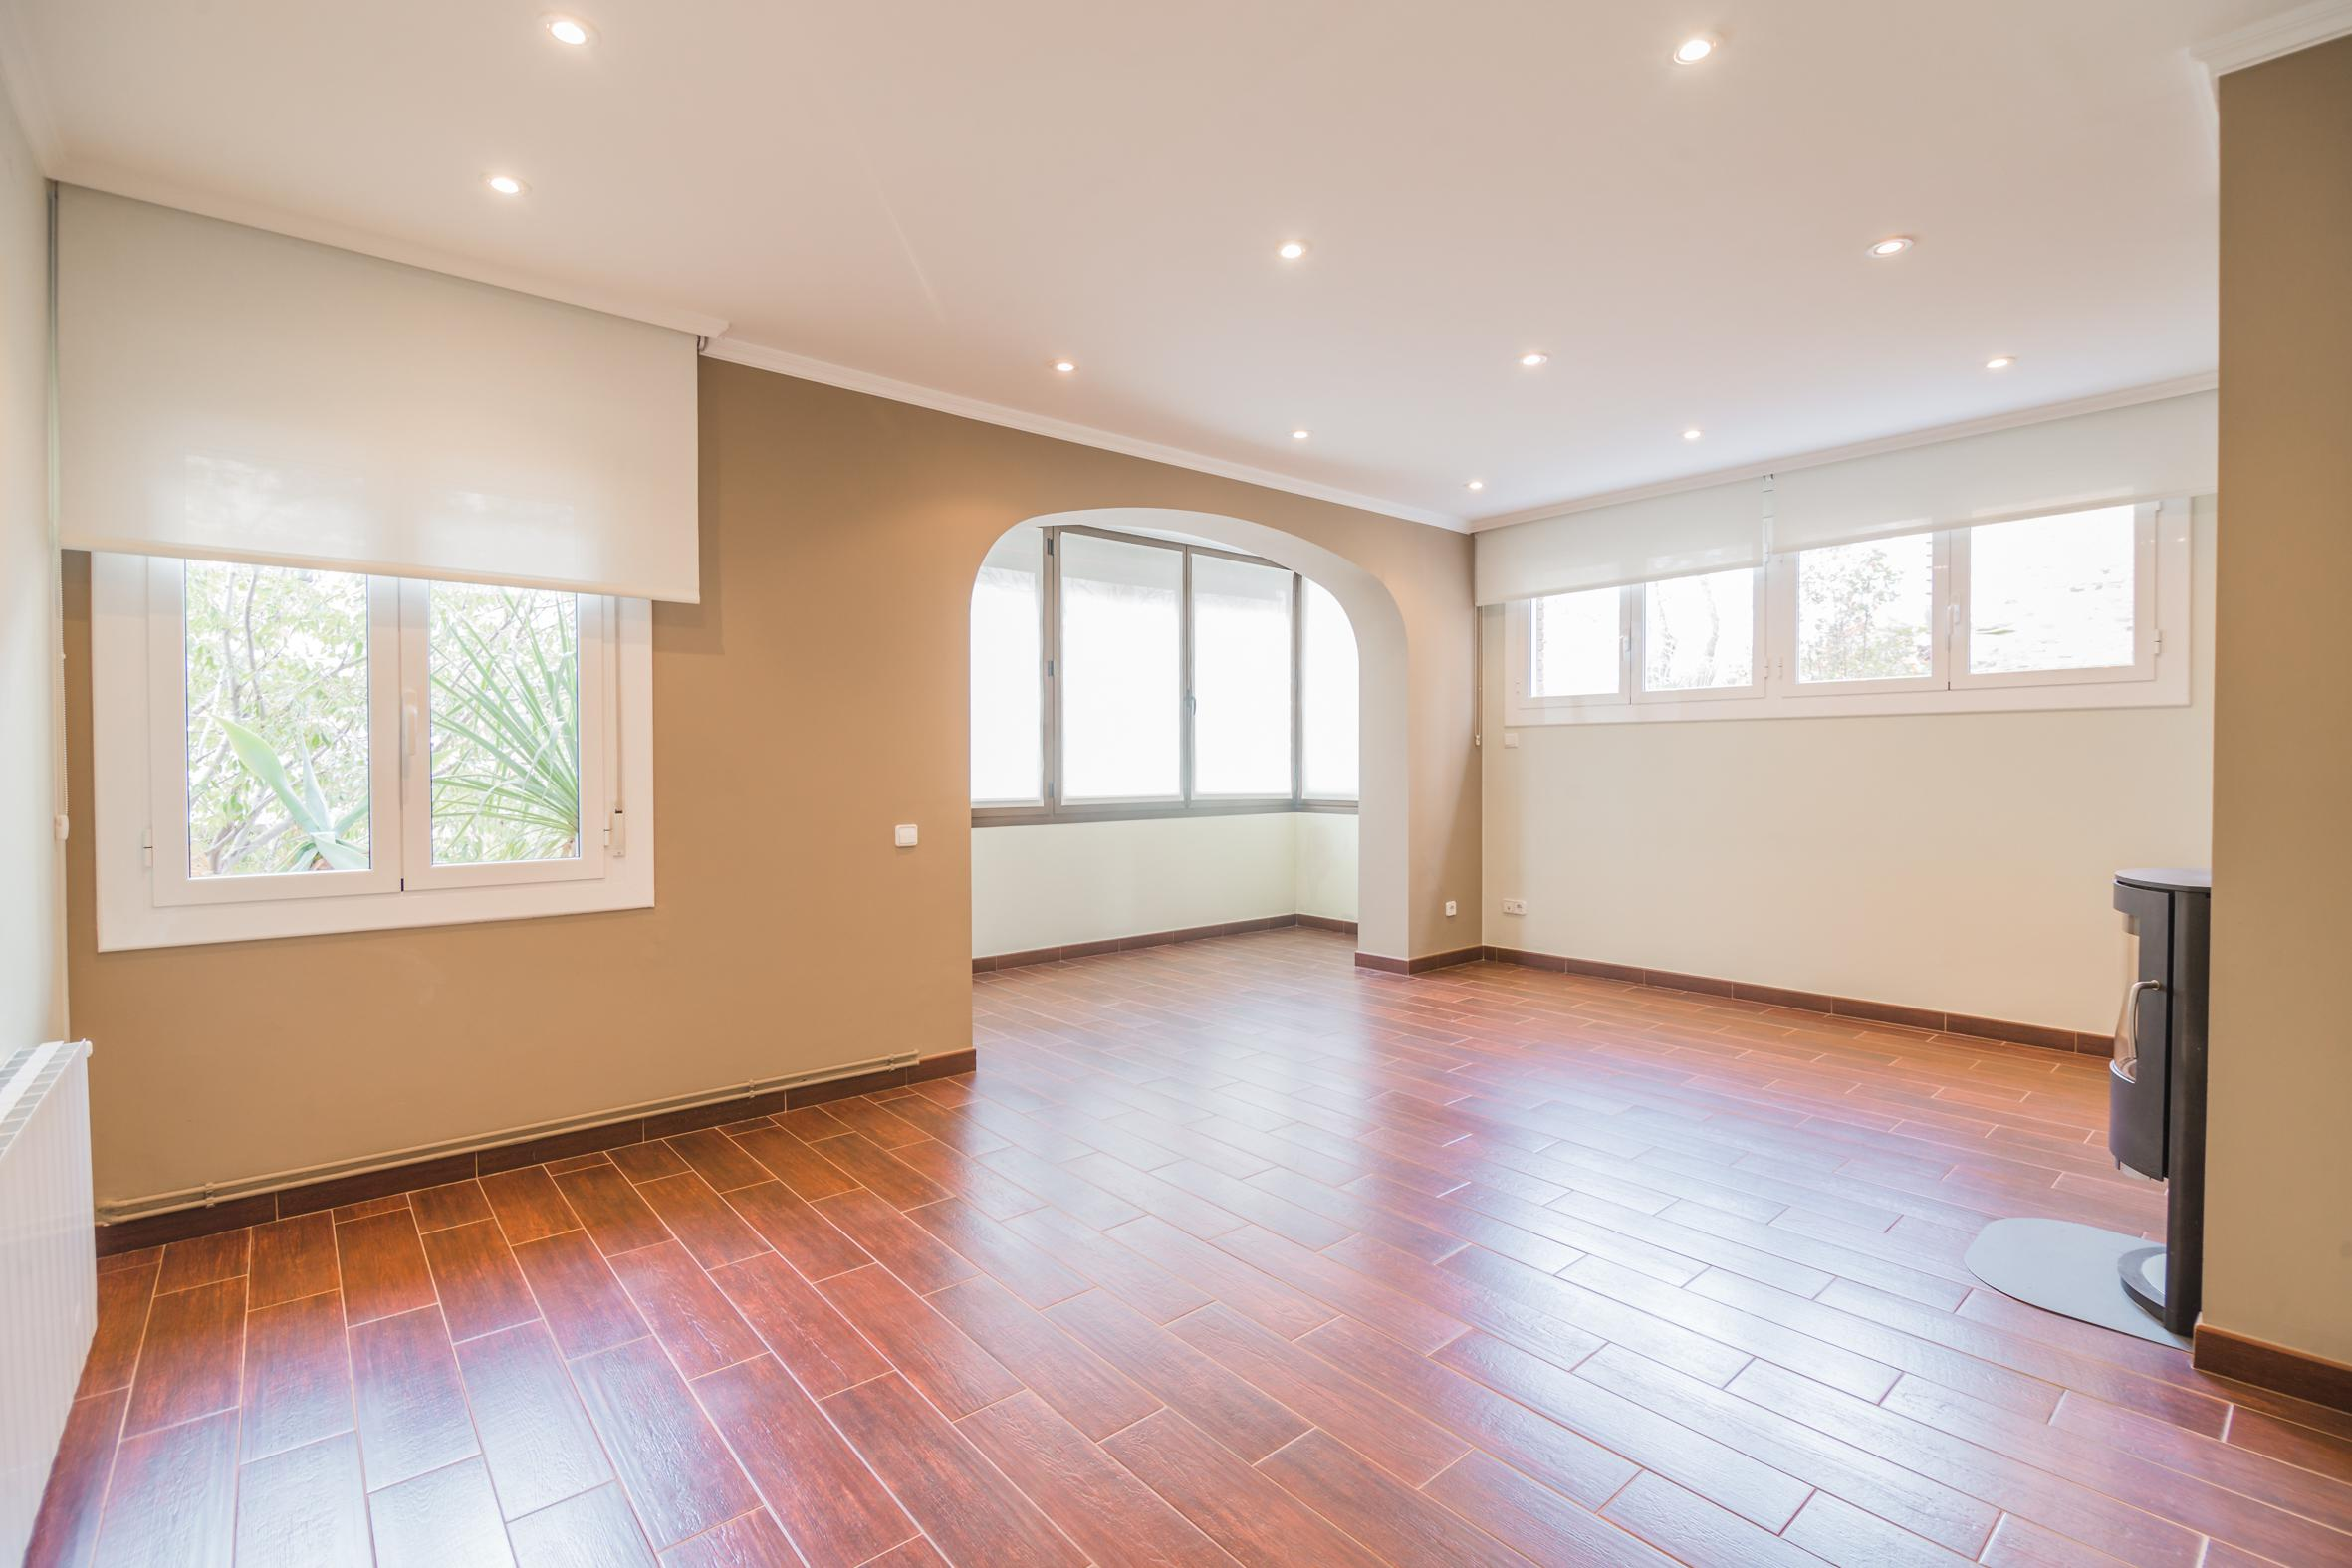 246902 Flat for sale in Les Corts, Pedralbes 1